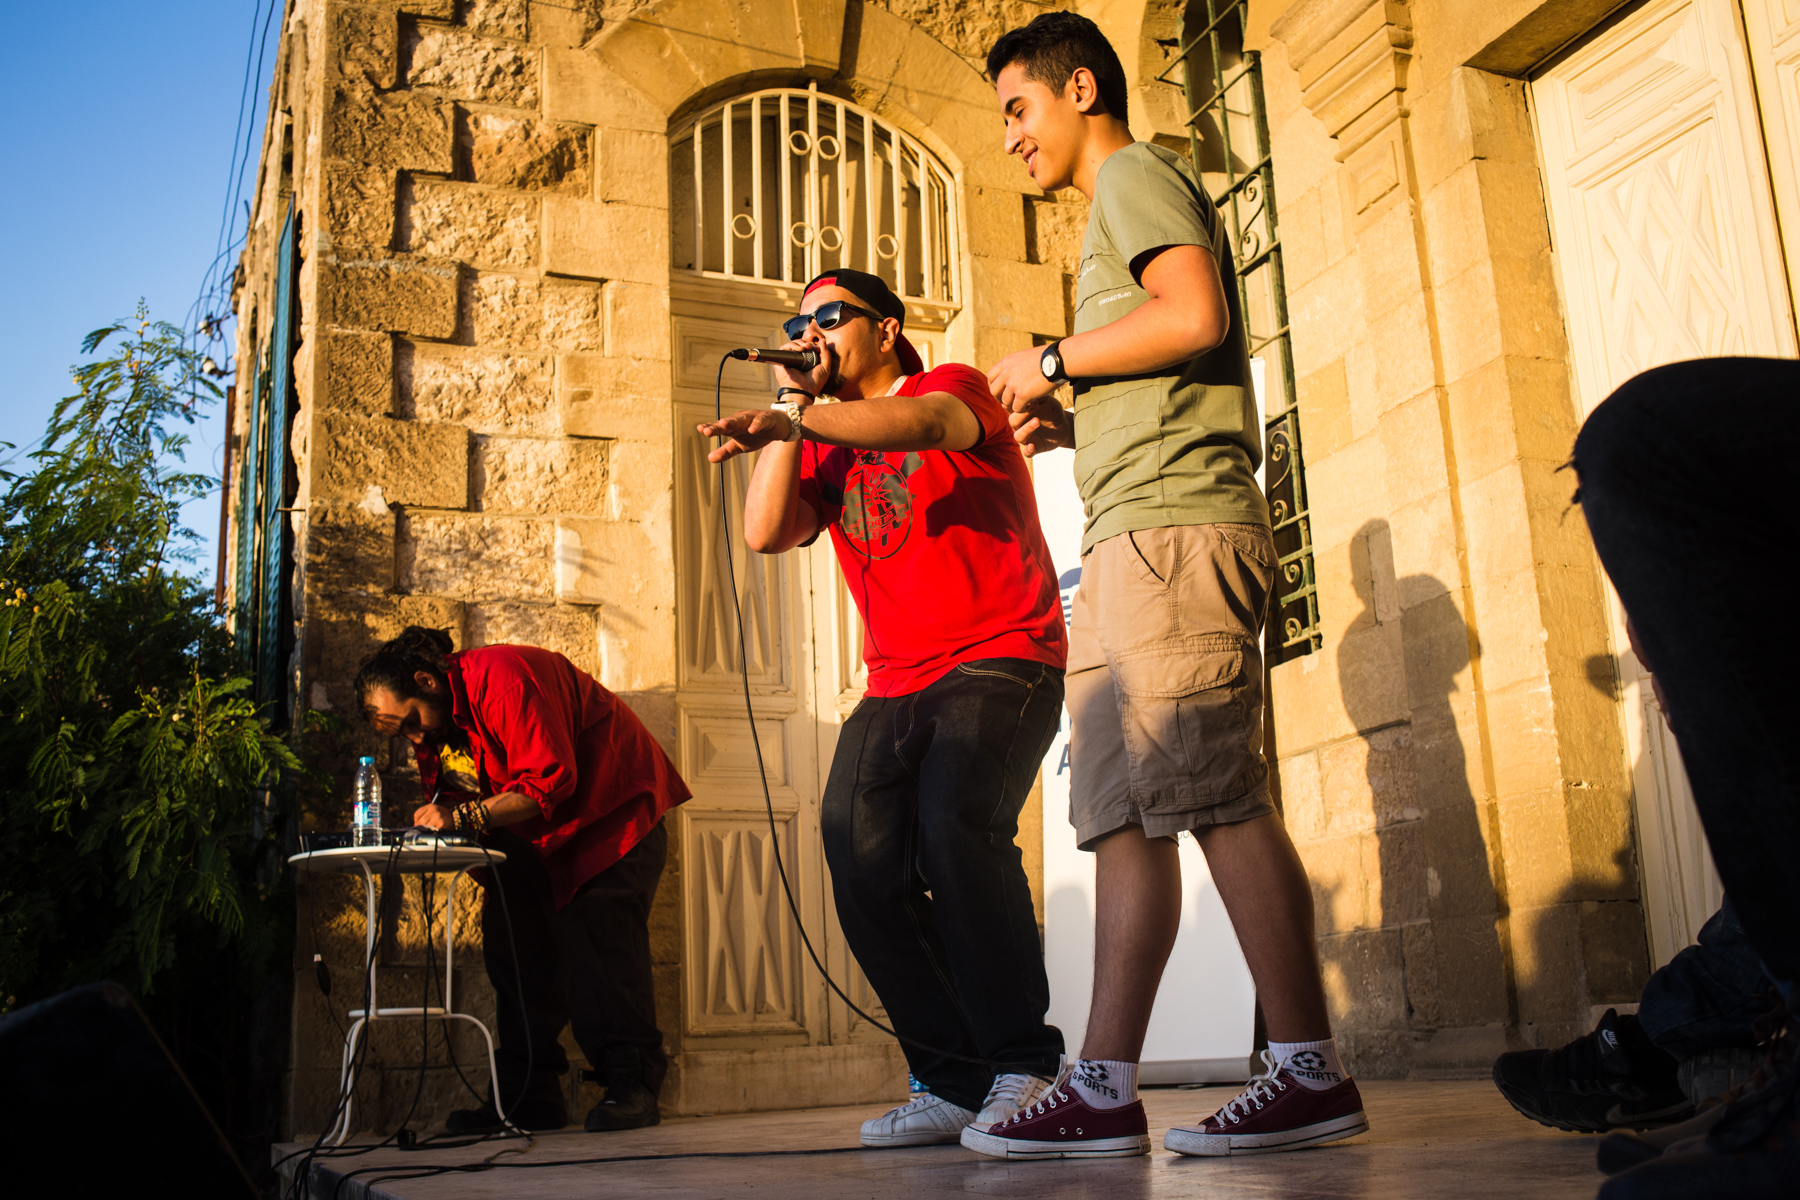 Fahad al-Huweian performs during King of the Beat, an annual beatboxing competition, on May 20, 2016 in Amman, Jordan.